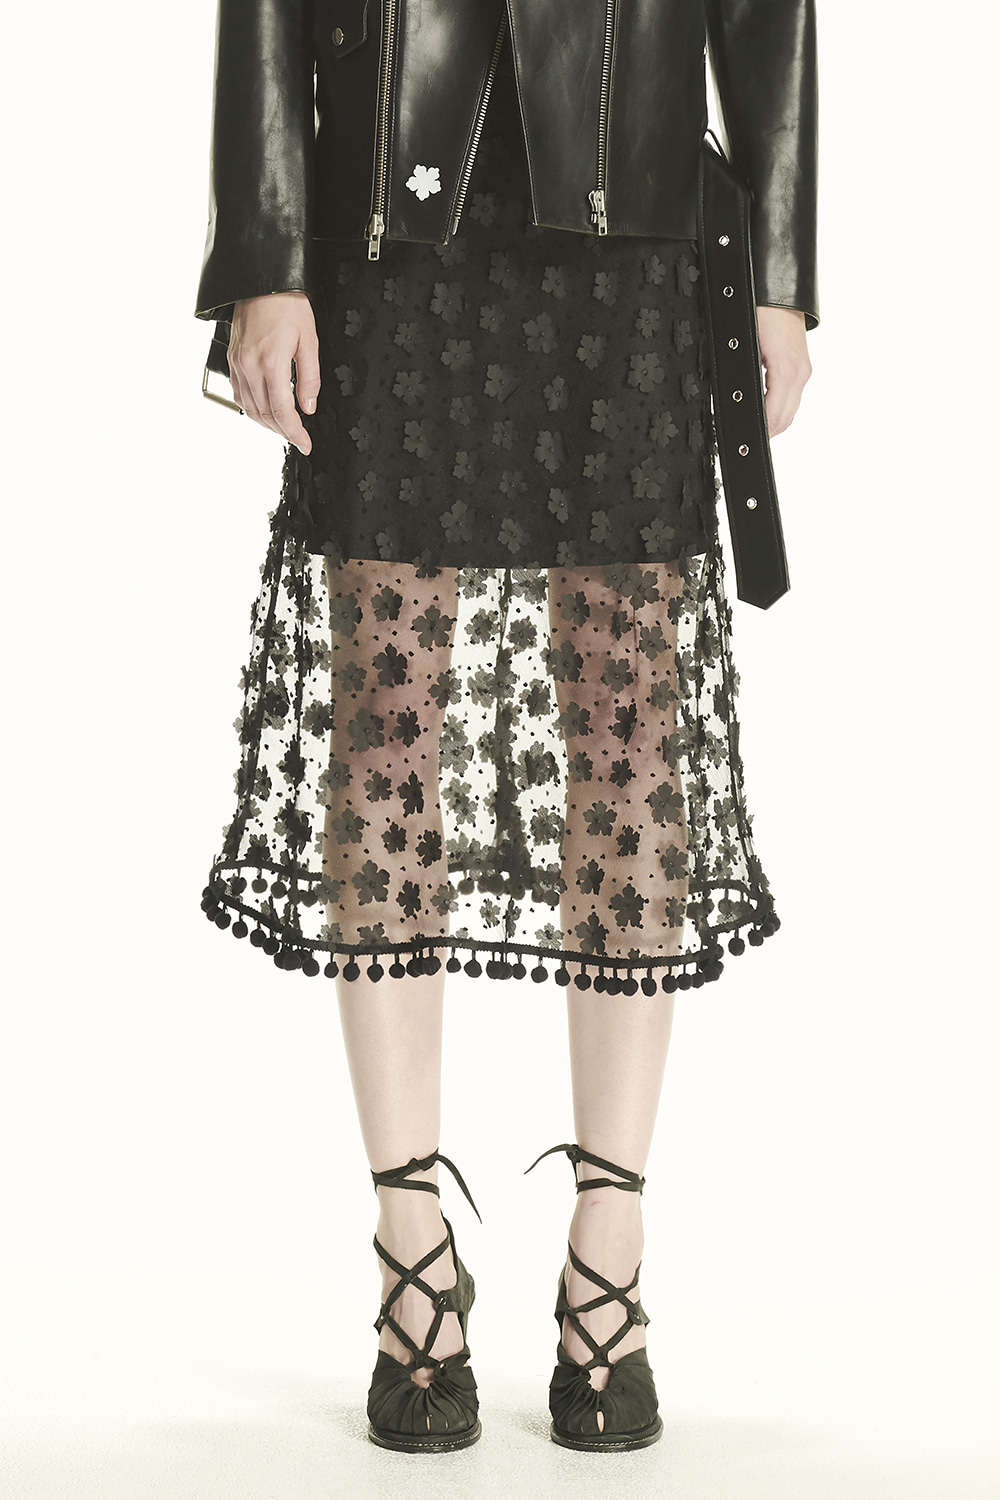 PS21 SHEER APPLIQUE BLACK SKIRT